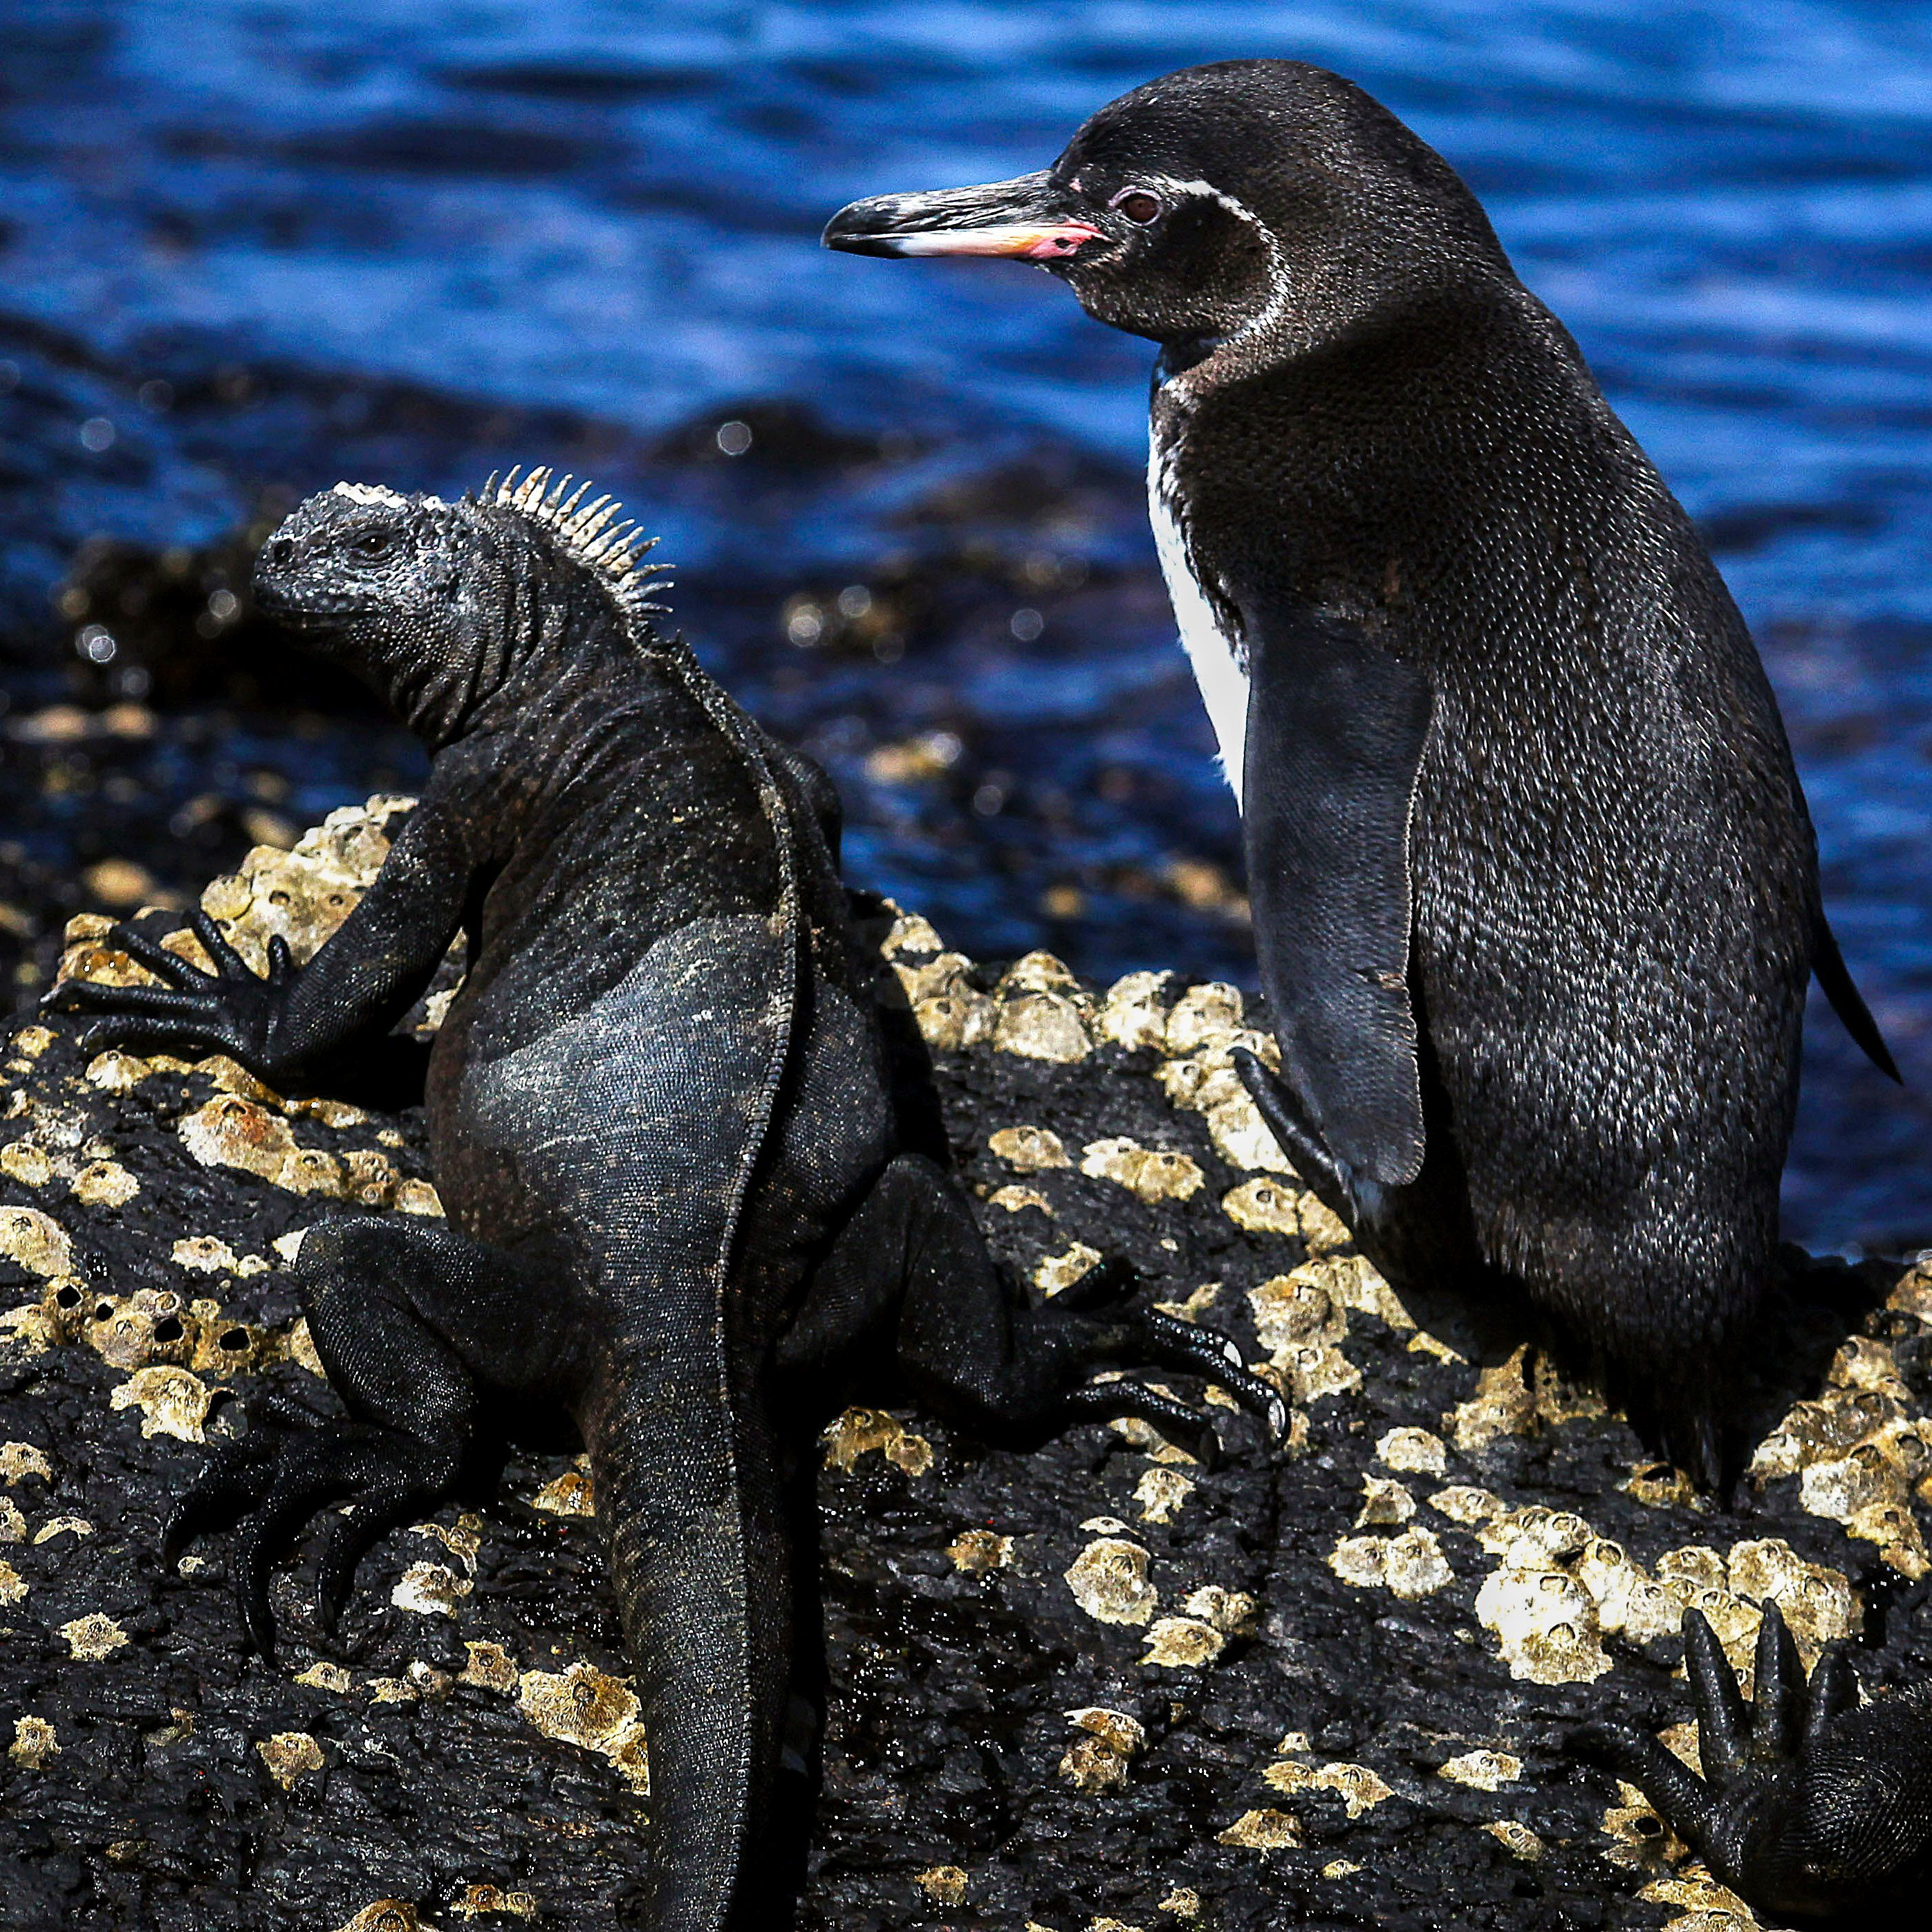 Marine Iguana and a Penguin. Amazing to see such different